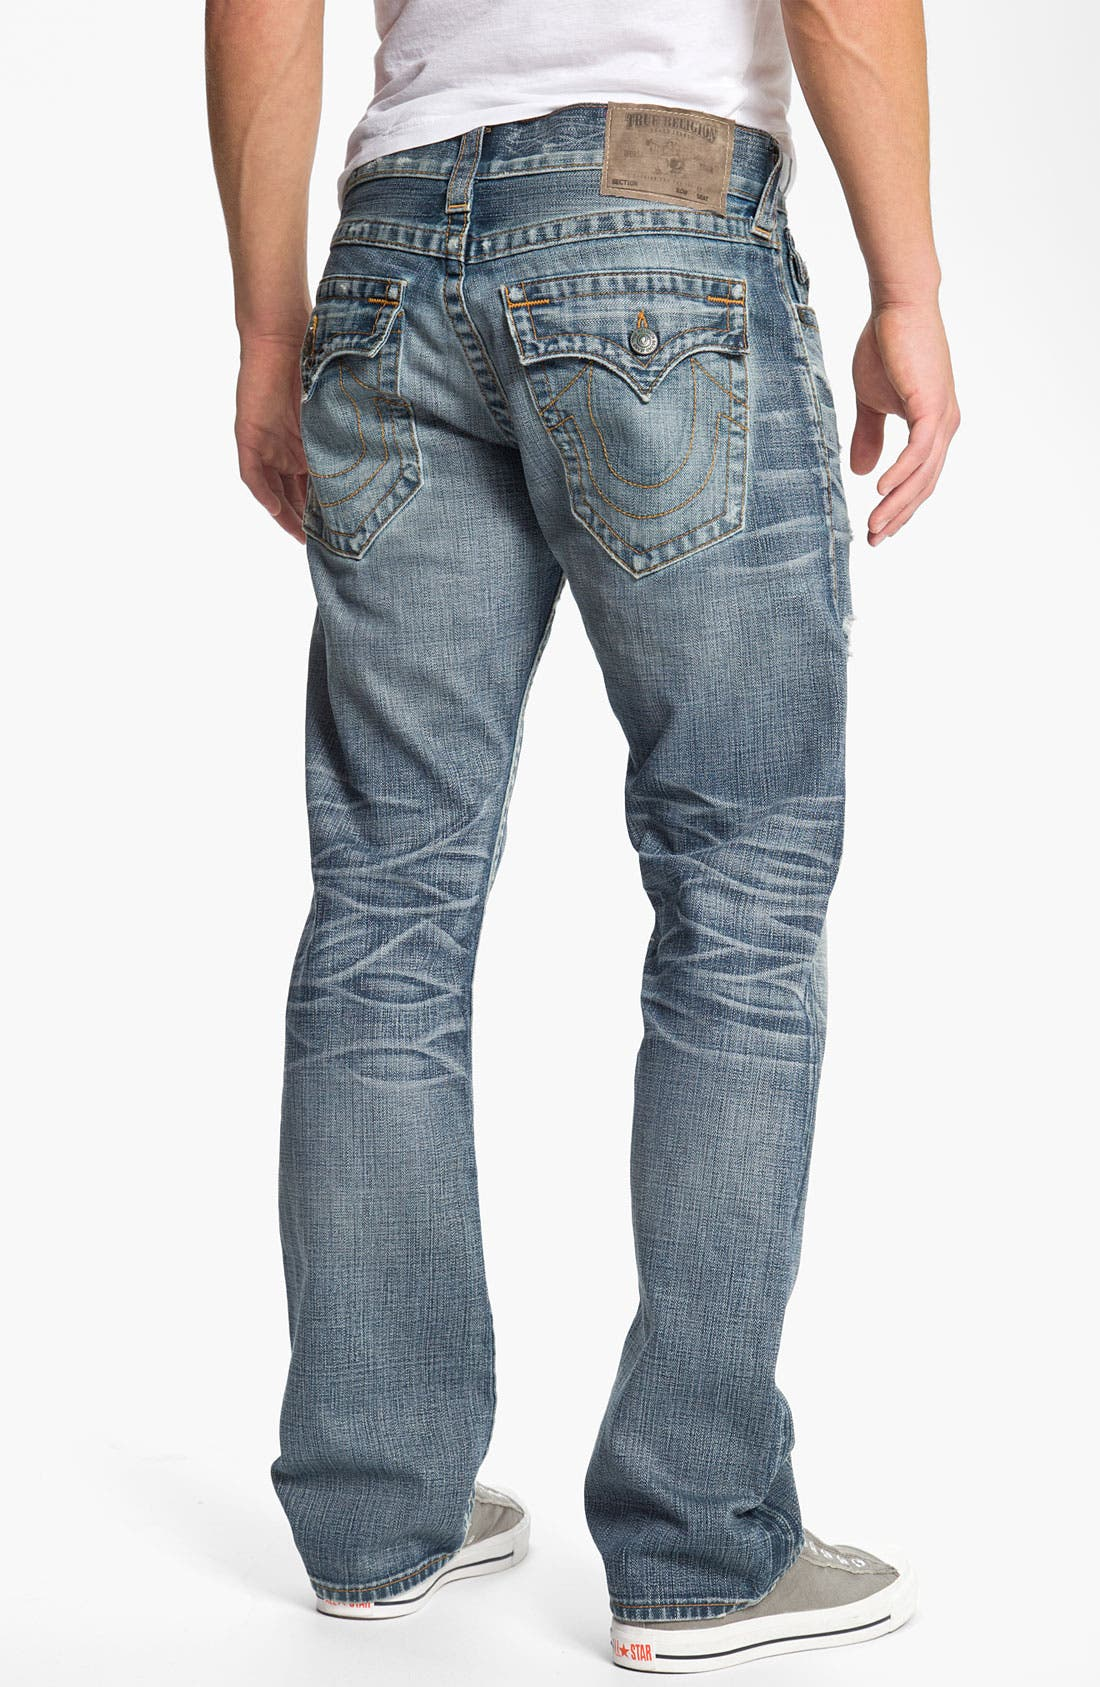 Main Image - True Religion Brand Jeans 'Ricky Vintage' Straight Leg Jeans (Tyrant)